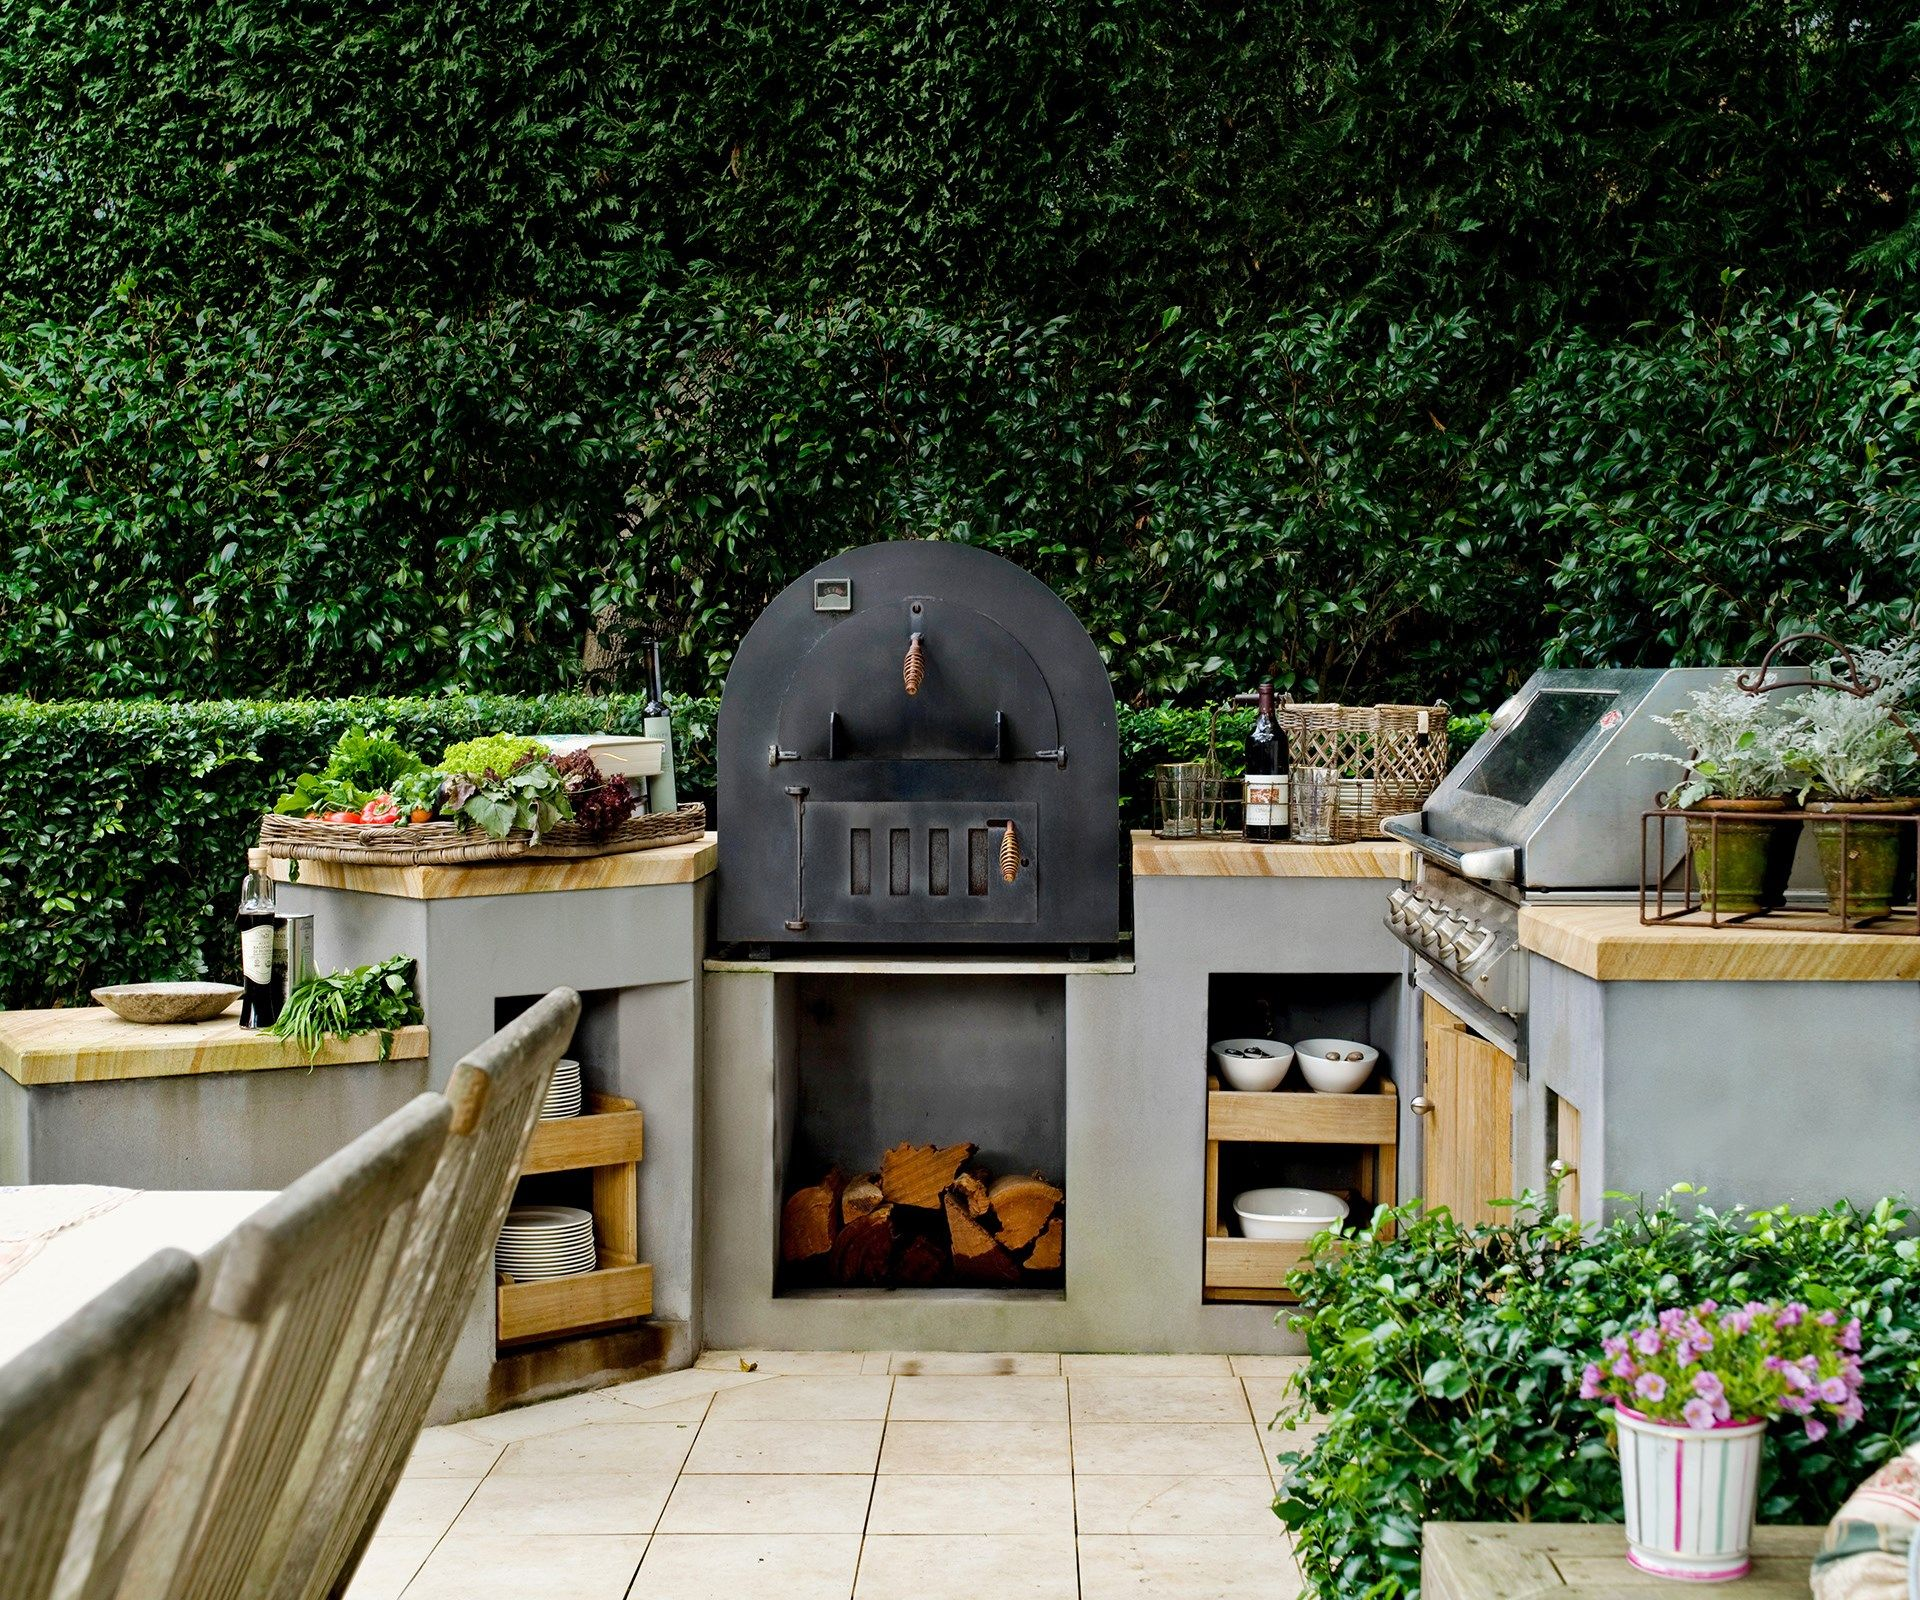 make life easier for yourself with an outdoor kitchen where all